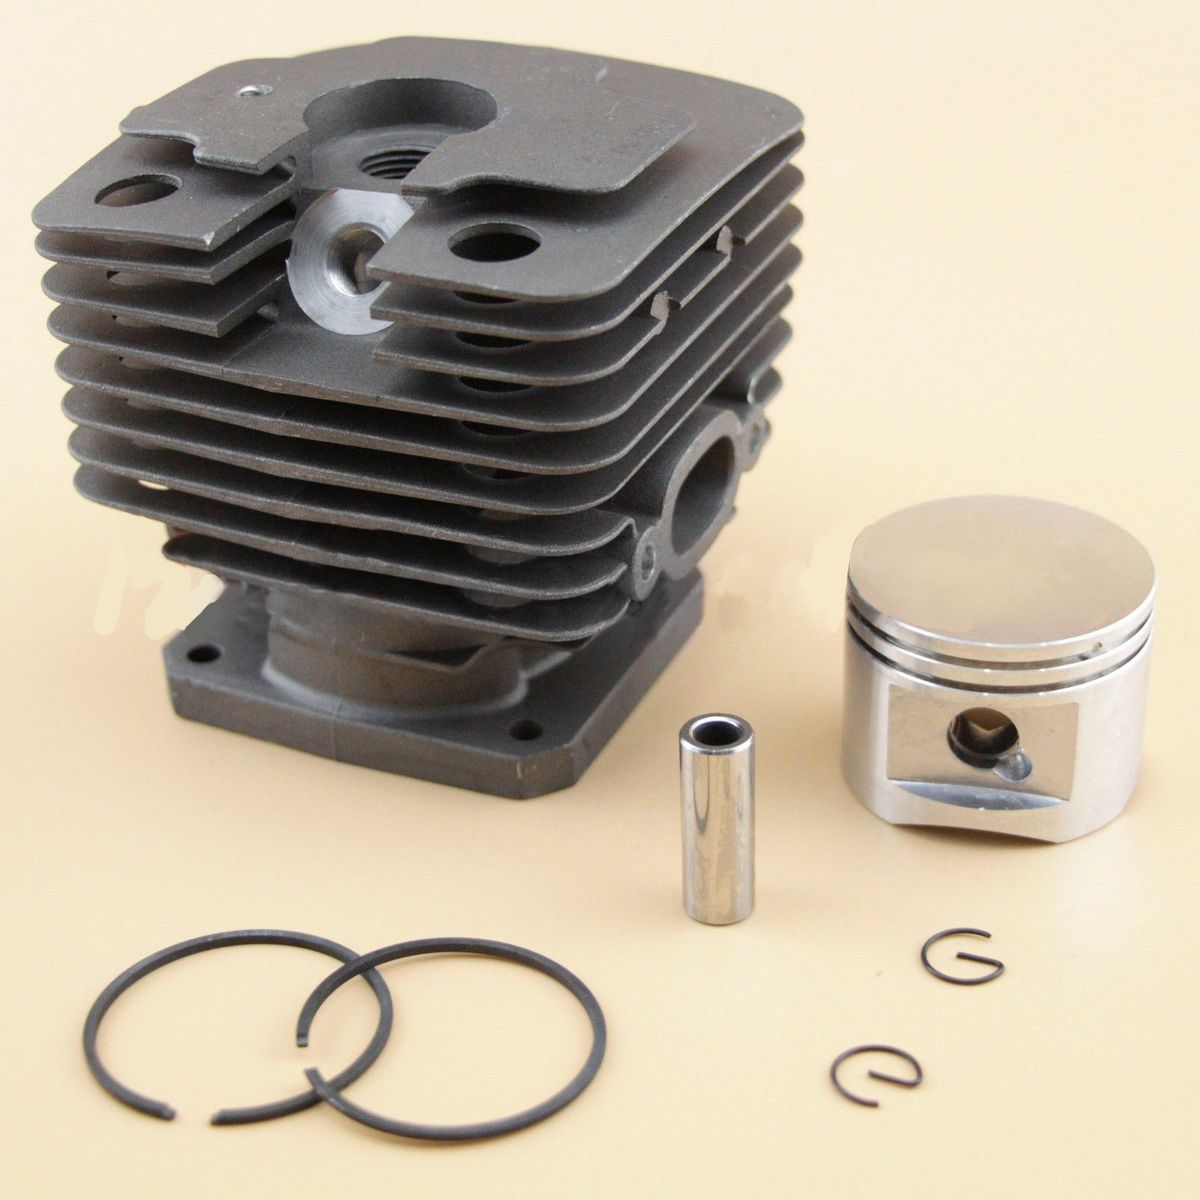 44mm Cylinder Piston Kit For FS400 FS450 FS480 FR450 SP400 4116 020 1215 Chainsaw Replacemnt Parts Mayitr New